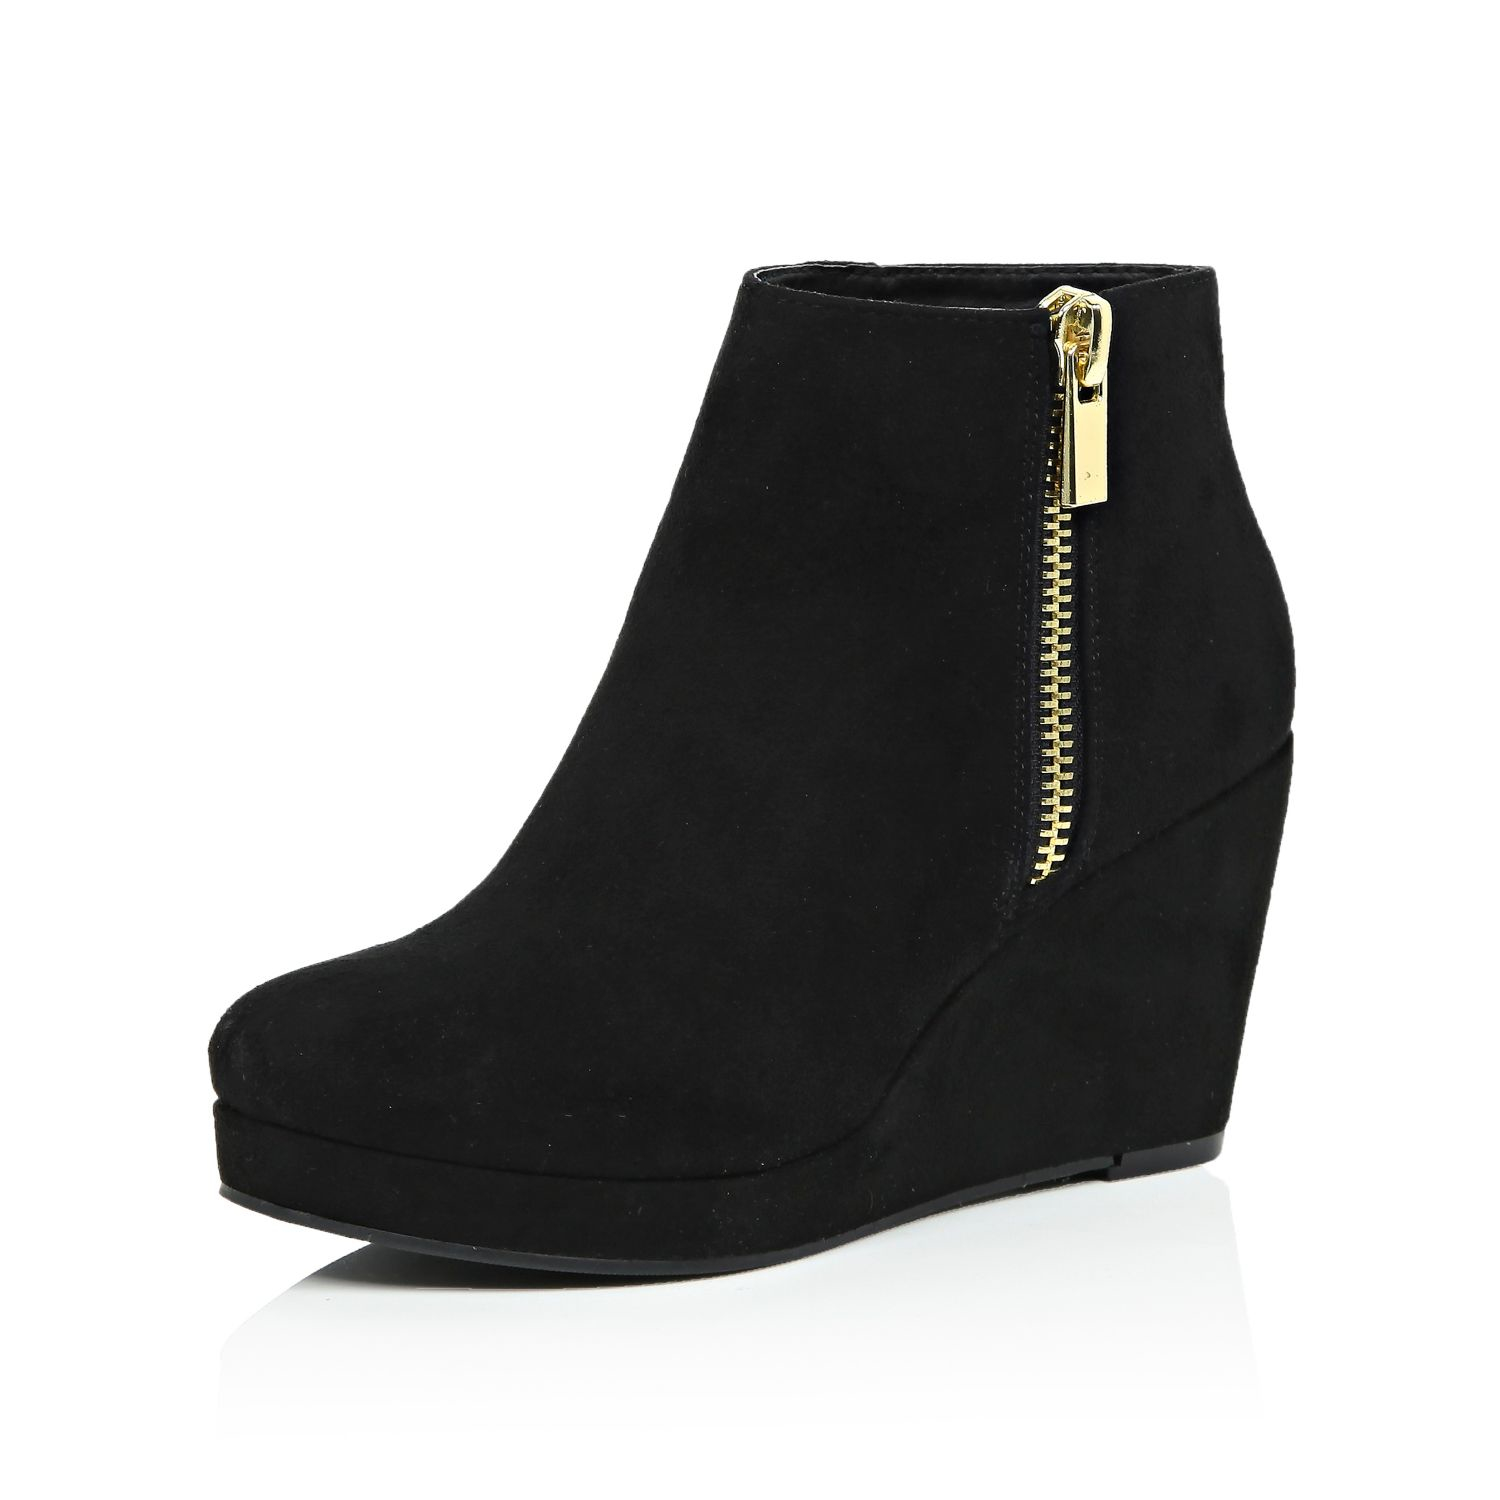 ee5efd4aa329 River Island Black Wedge Ankle Boots in Black - Lyst